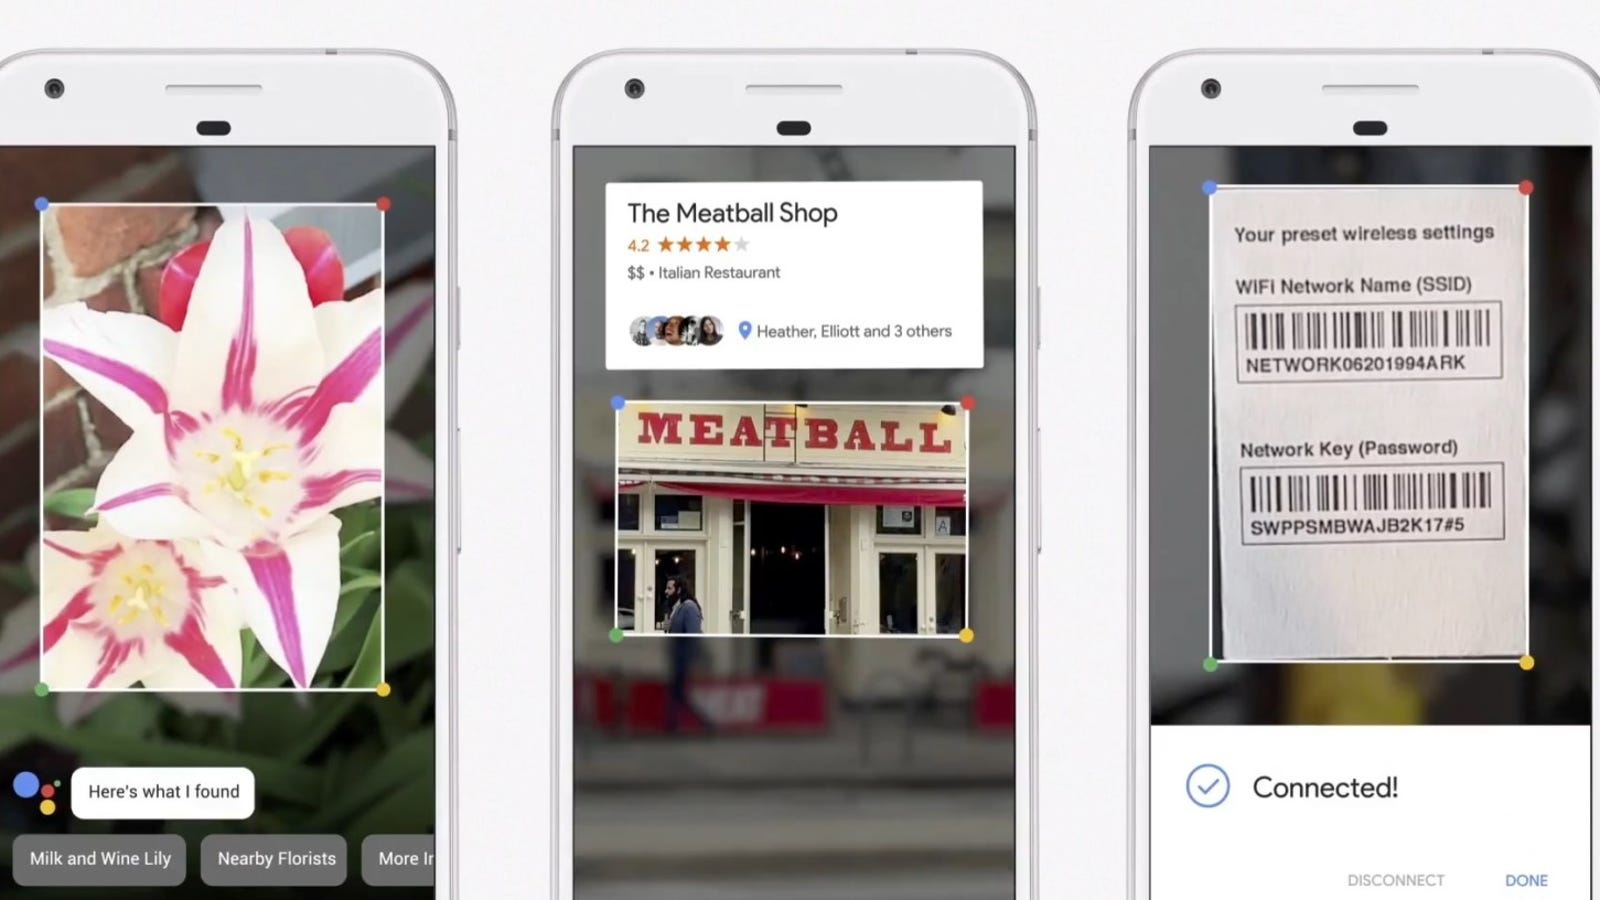 How to Get Started on Google Lens